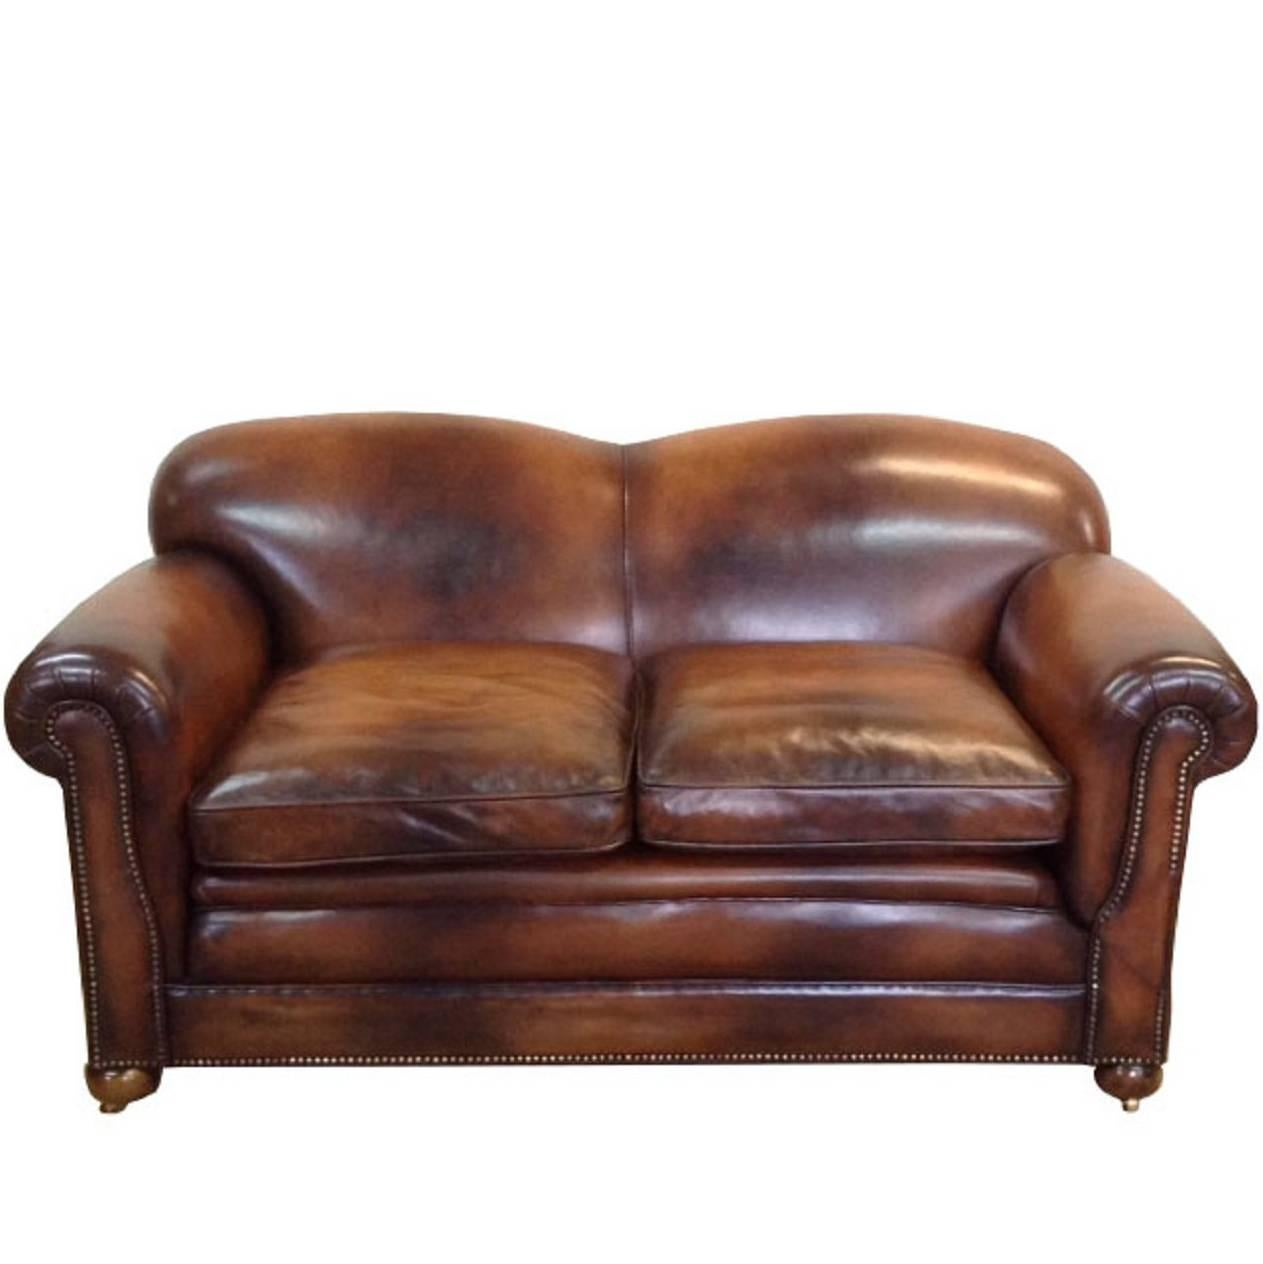 Antique Victorian Drop End Leather Sofa